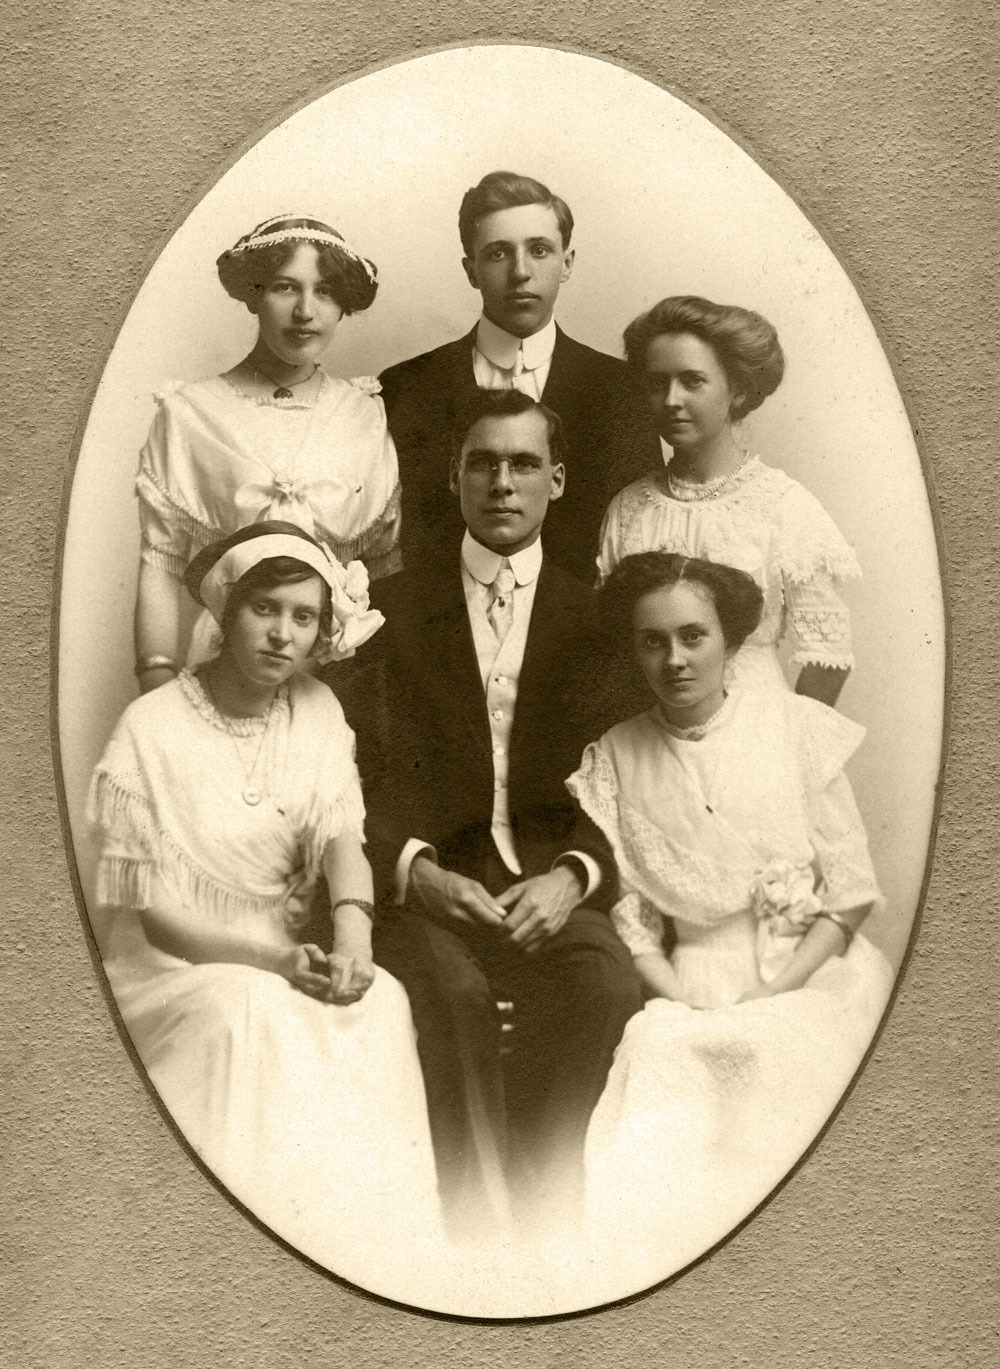 Top Left: Viola Bausman. Viola would have been about 19 years old. Written on back, in pencil (not Viola's handwriting): Earl Rummel, Alta Phillips Pierson, Lucille Roberts, Rosella Bird Schalk. The man in the middle is not identified, but think he was probably their teacher. Assume this is the Scales Mound High School Senior Class picture since they all graduated that year.